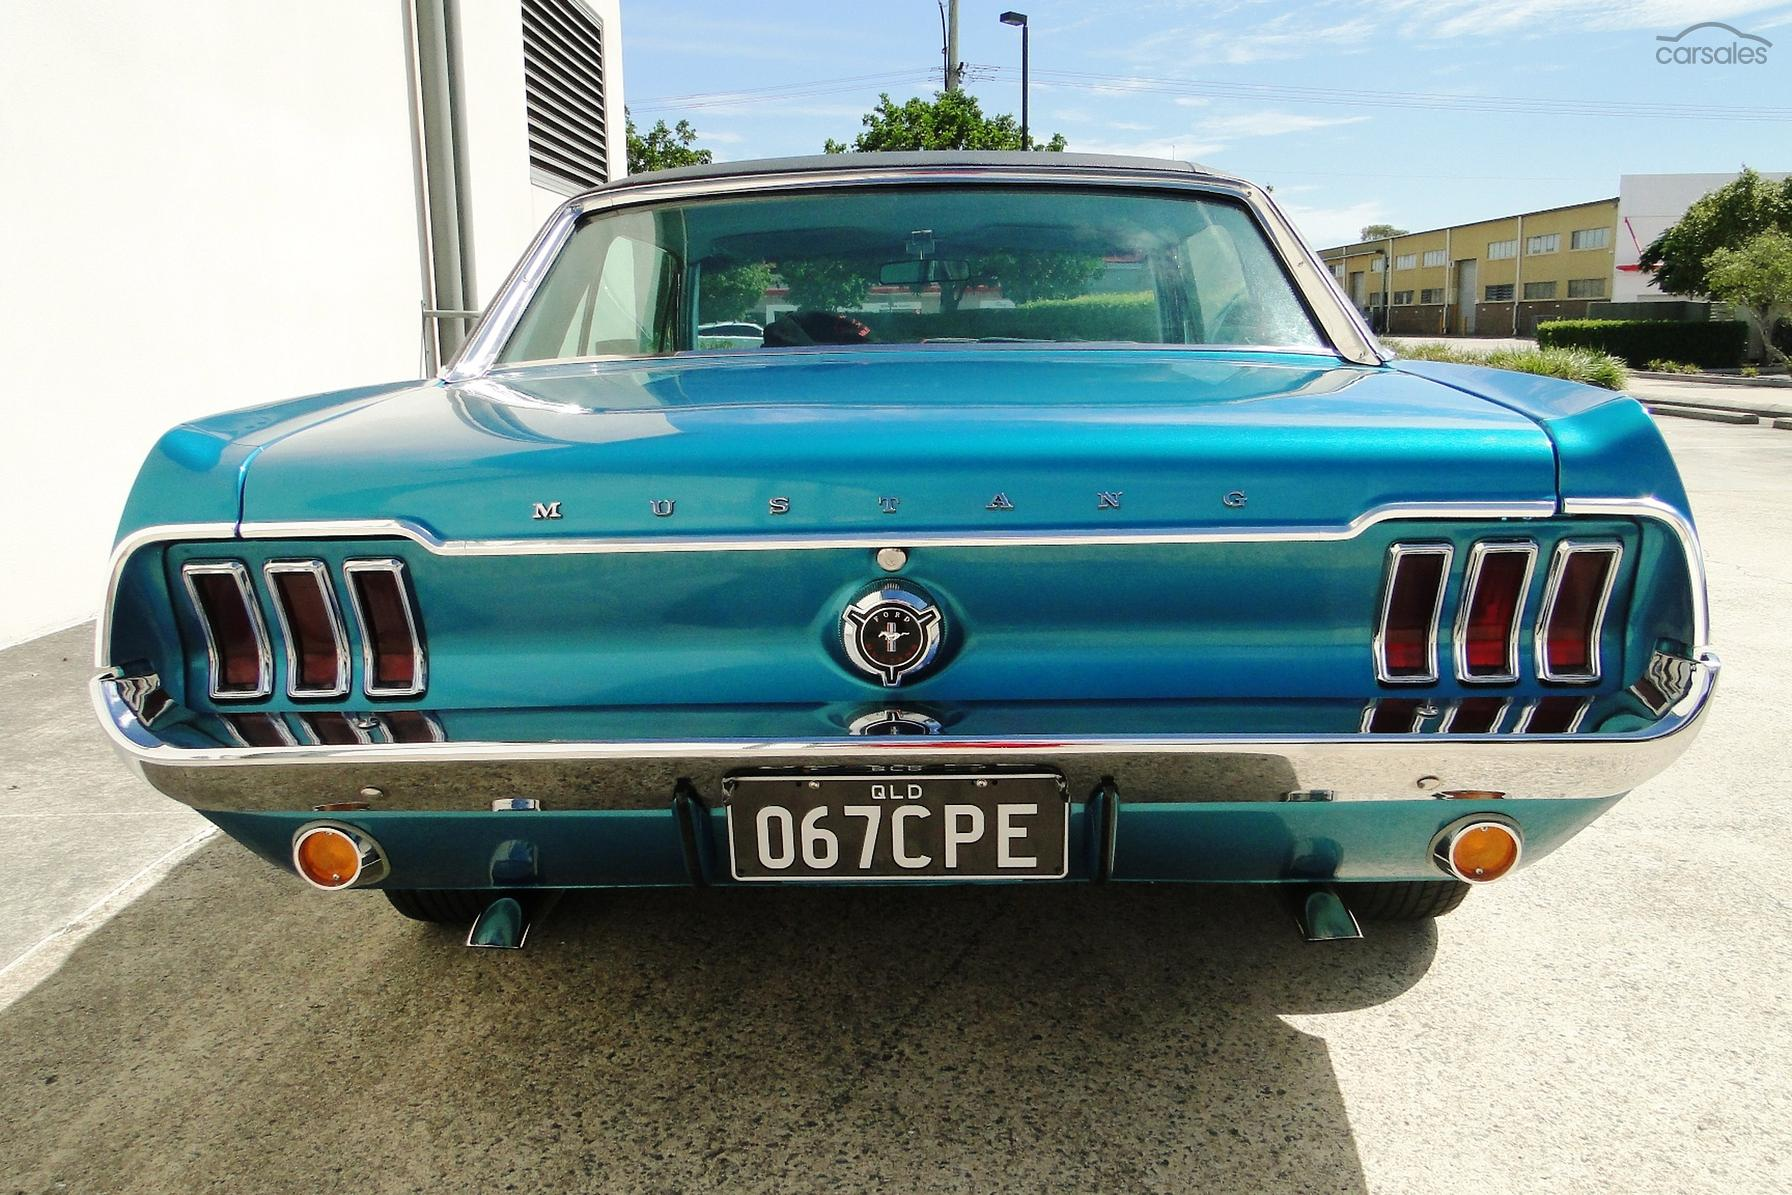 1967 ford mustang auto sse ad 4571816 carsales com au